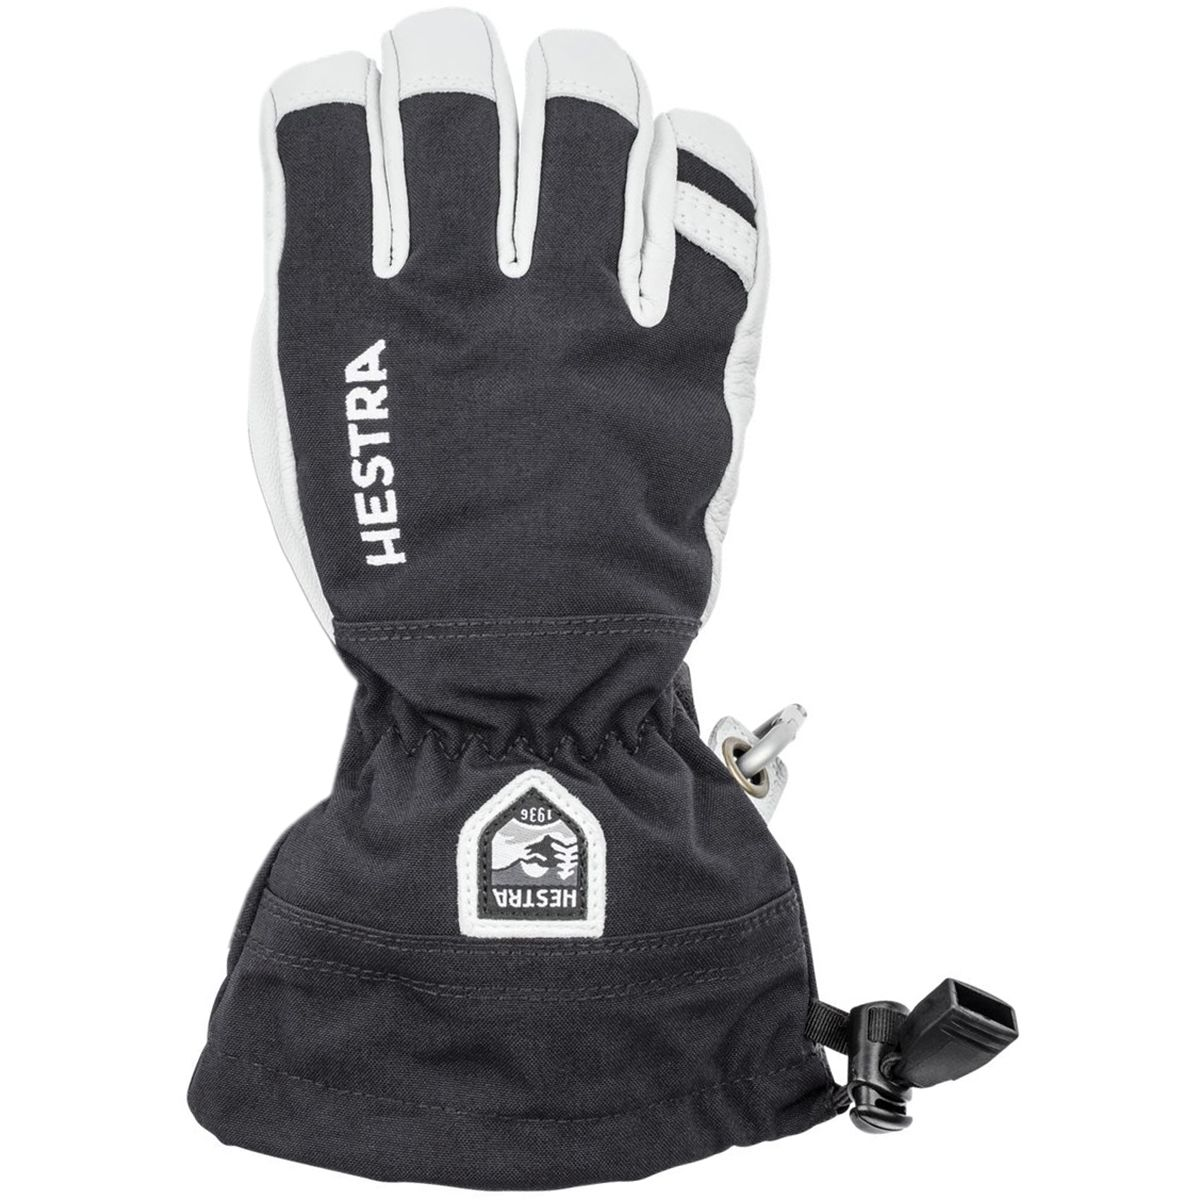 Hestra Heli Ski Junior Glove - Kids